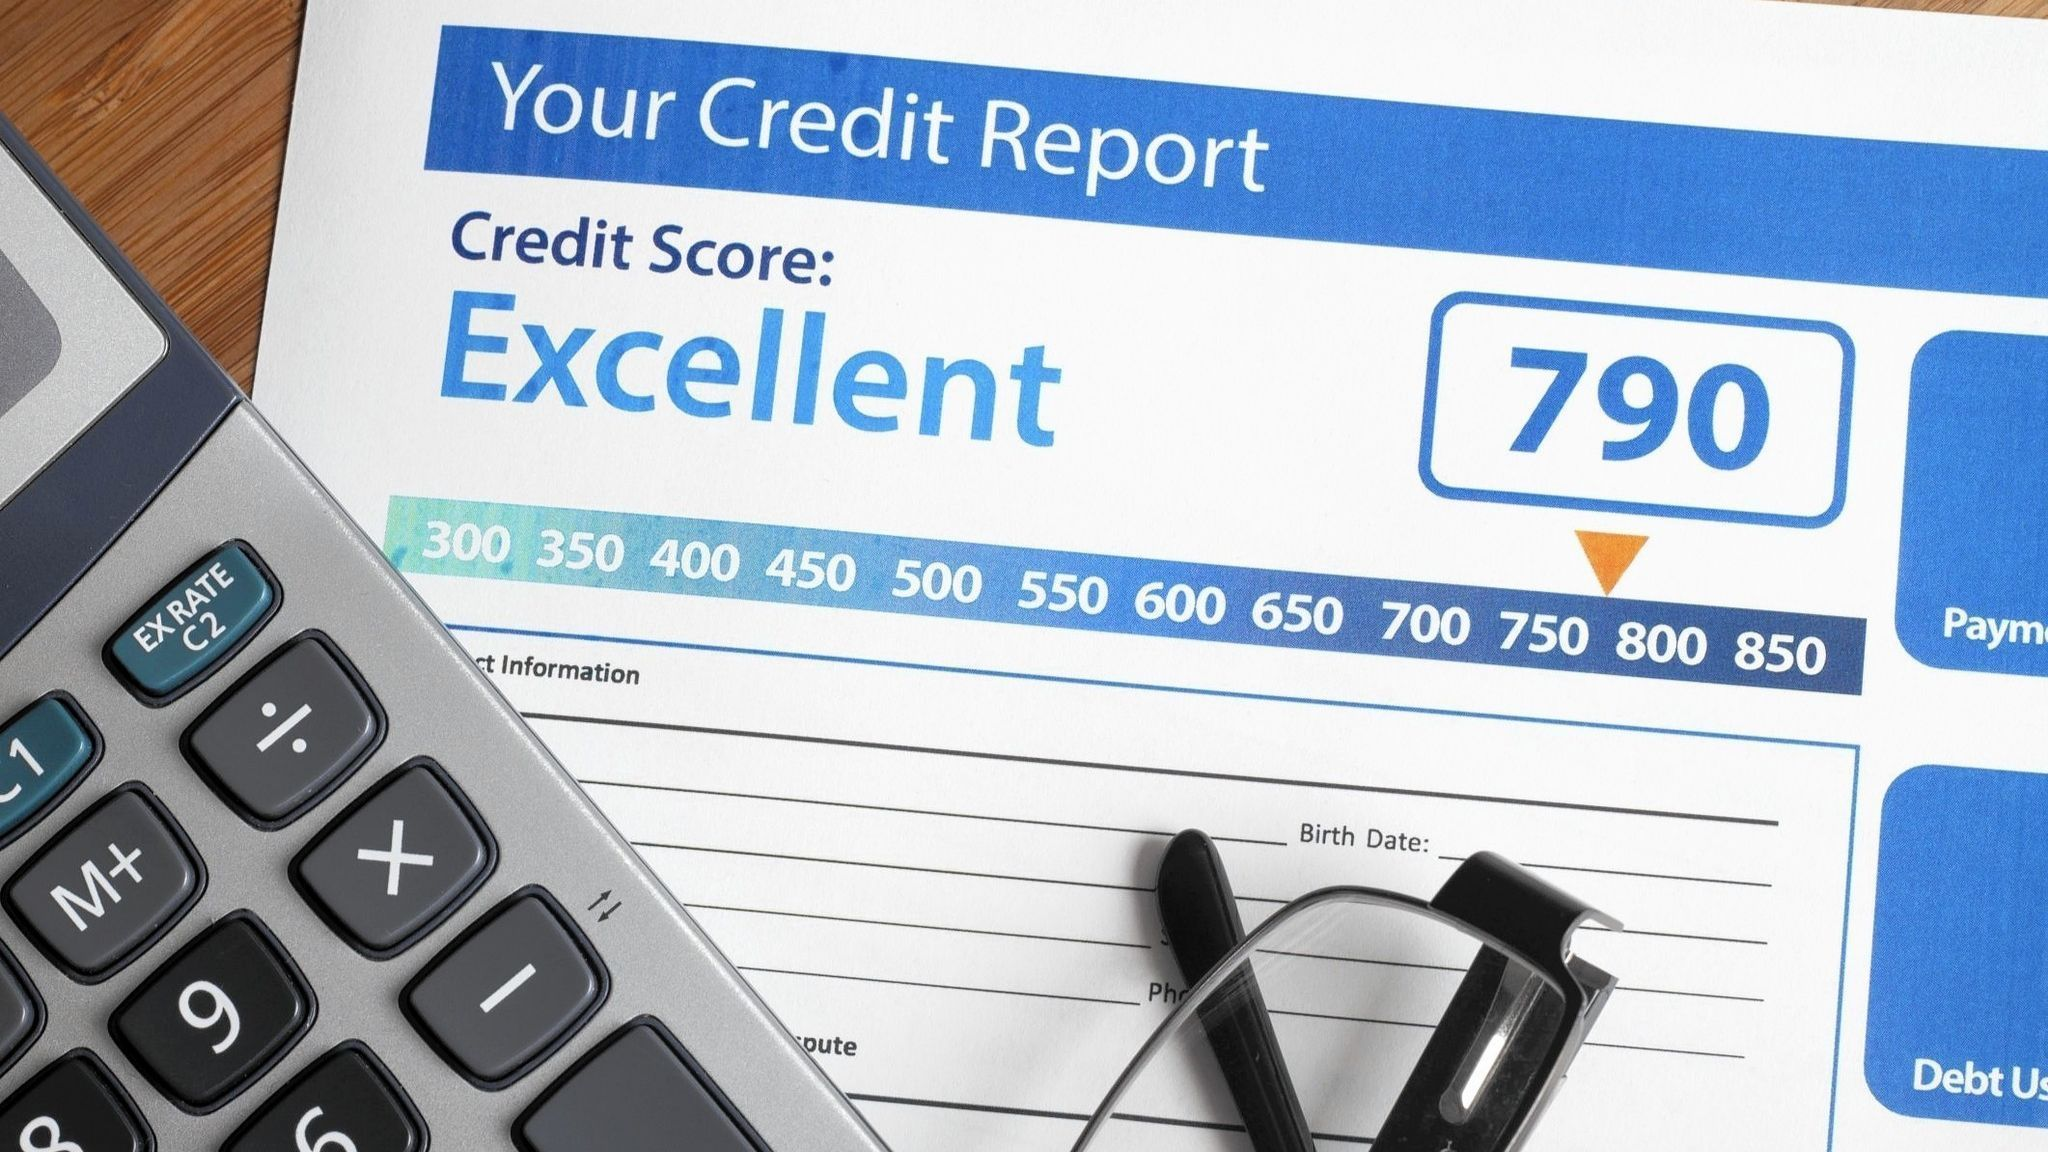 3 new financial tools offer a boost to credit ratings